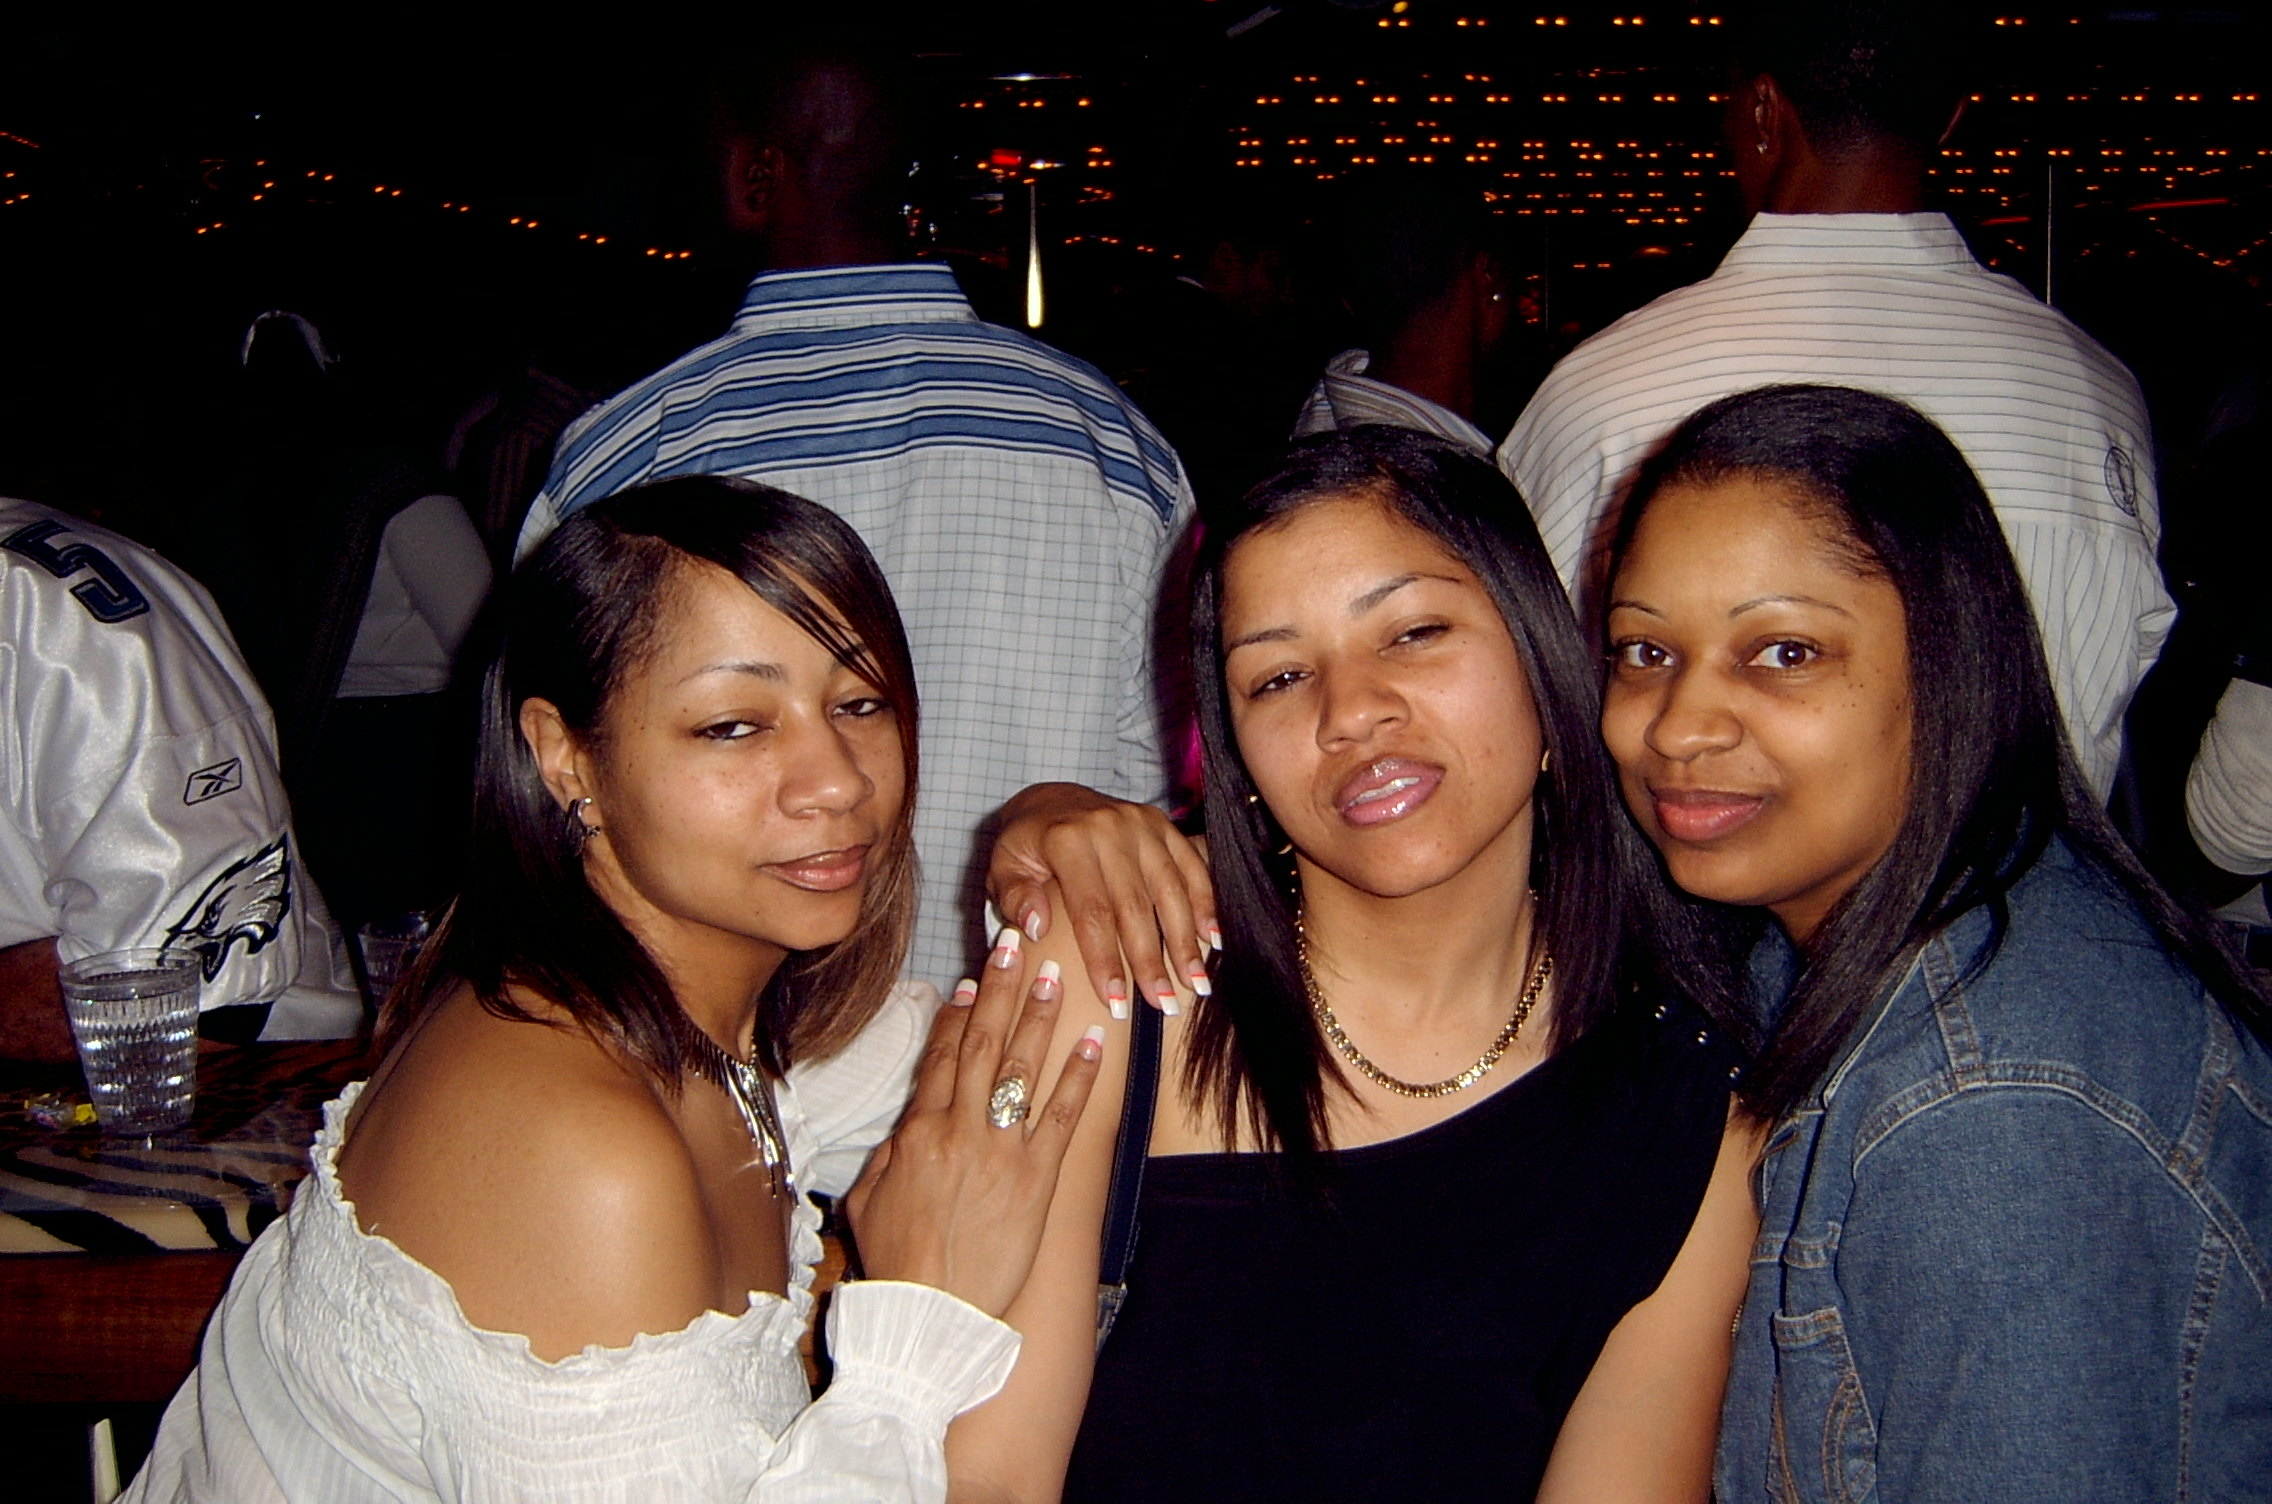 me and 2 of my sis